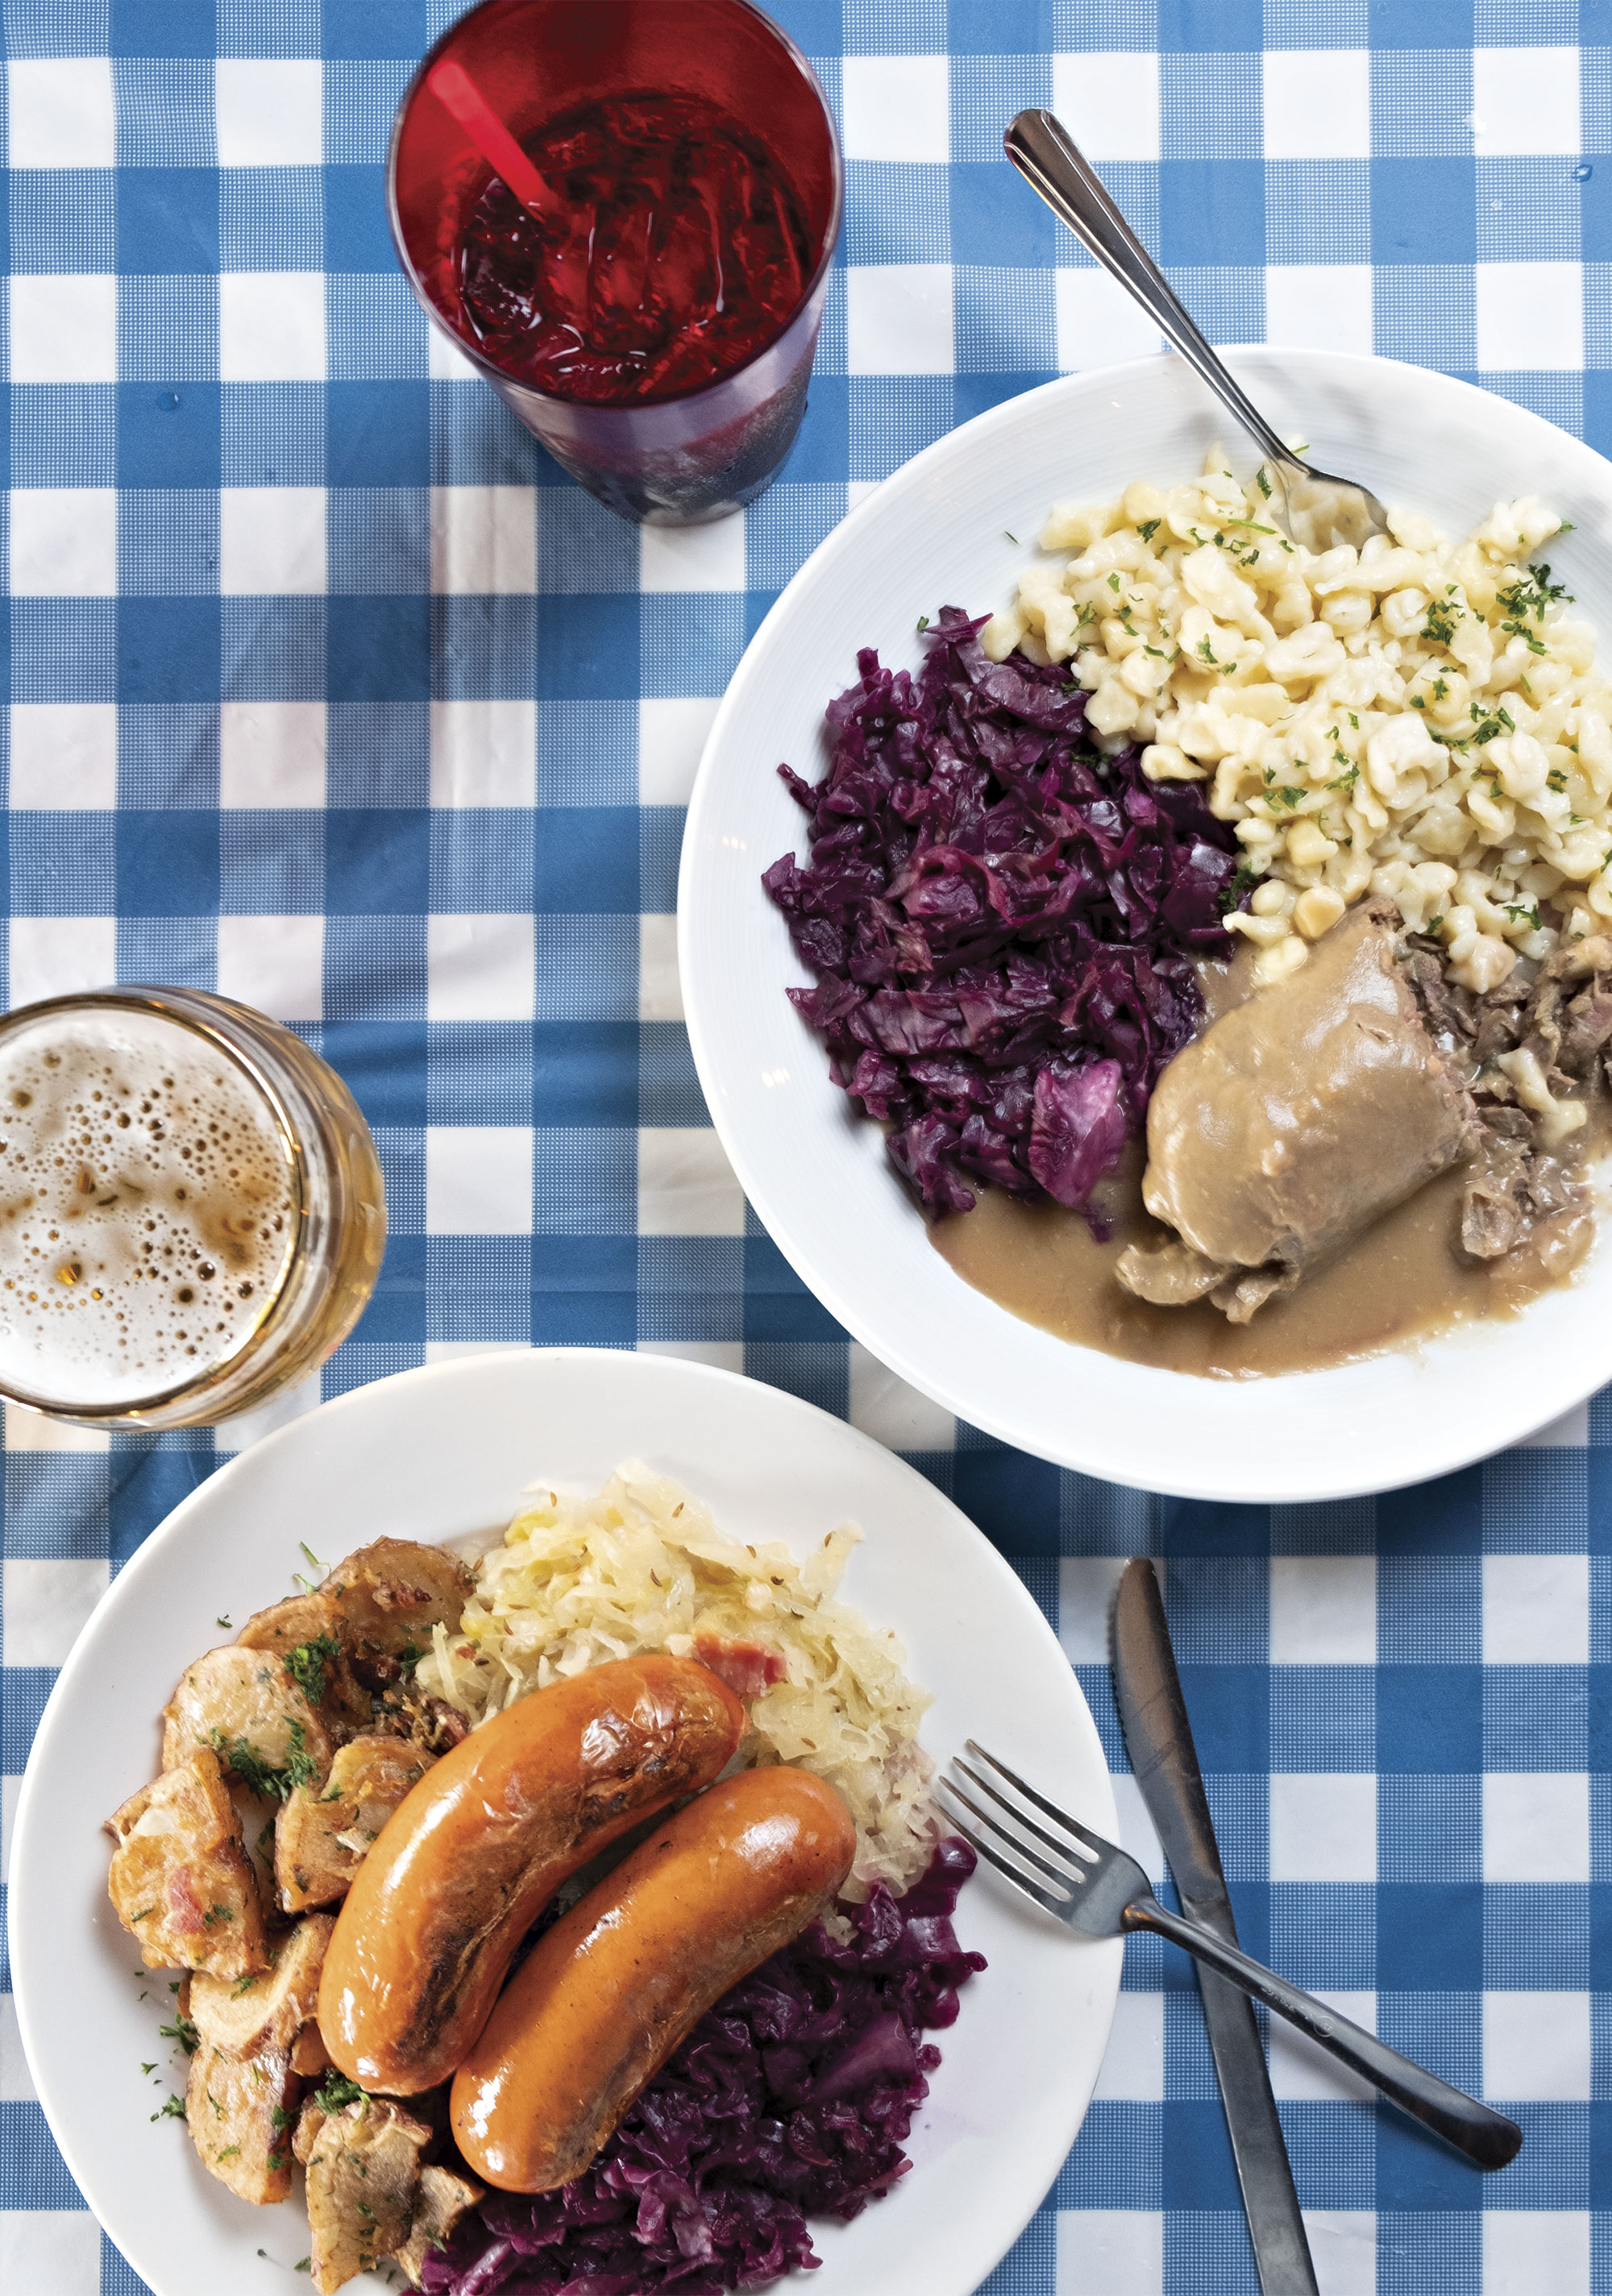 Knockwurst (left) and rinderrouladen plates at Edelweiss Biergarten; Photo by Mirelle Inglefield